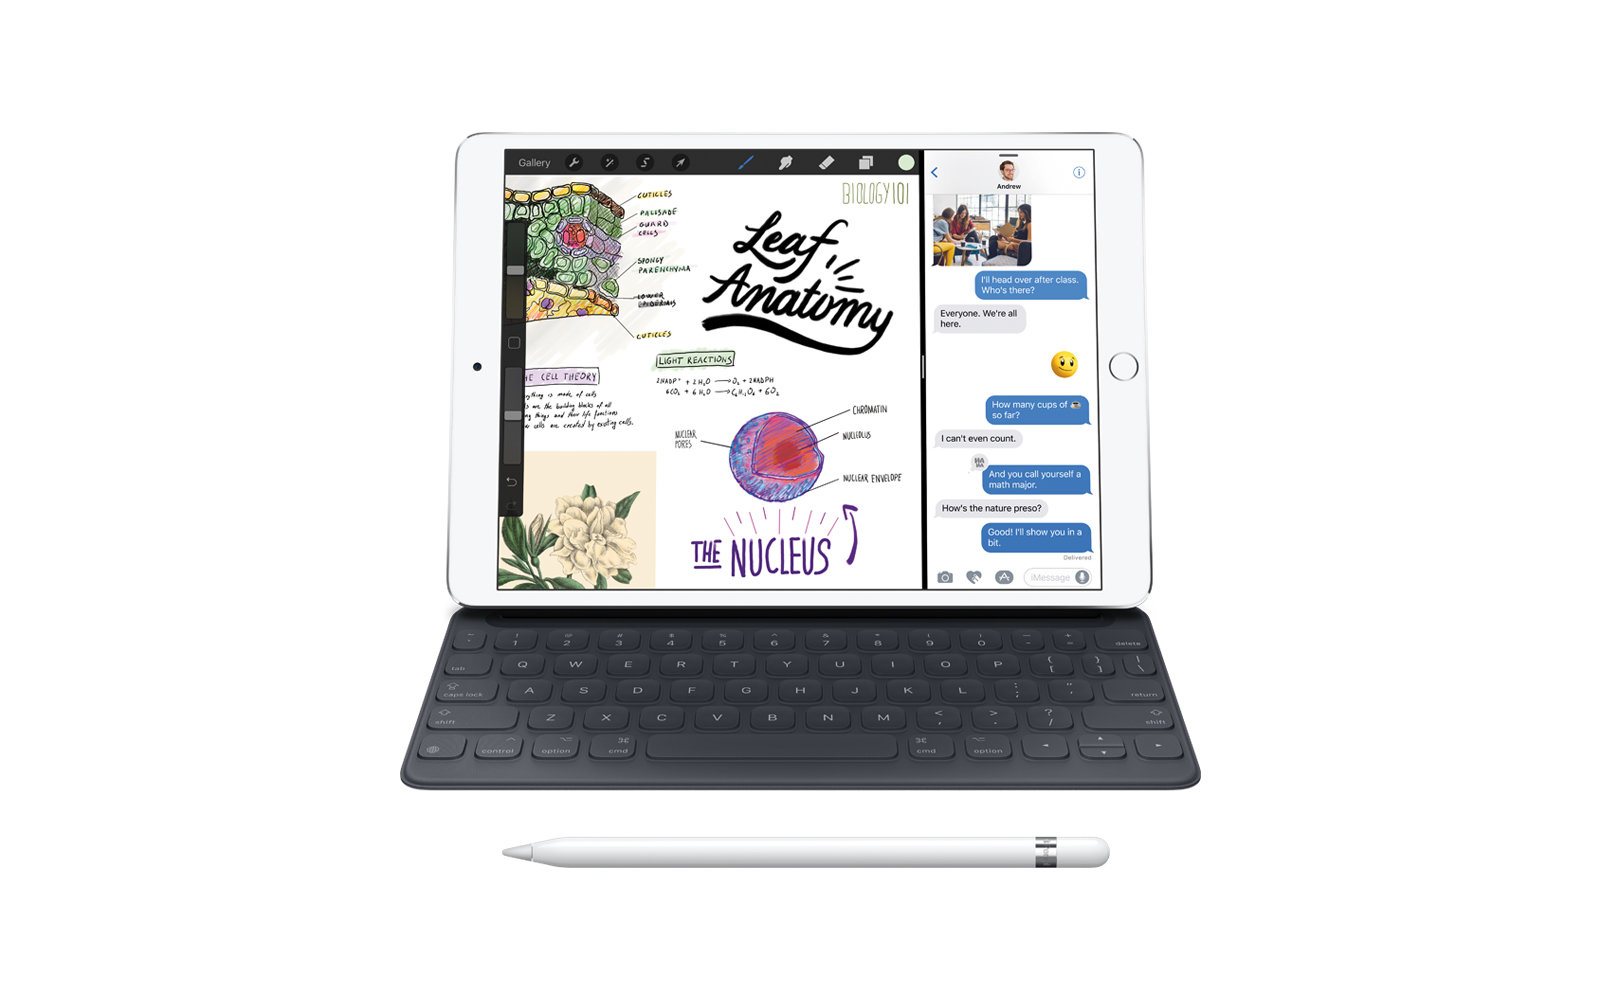 how to close applications on ipad